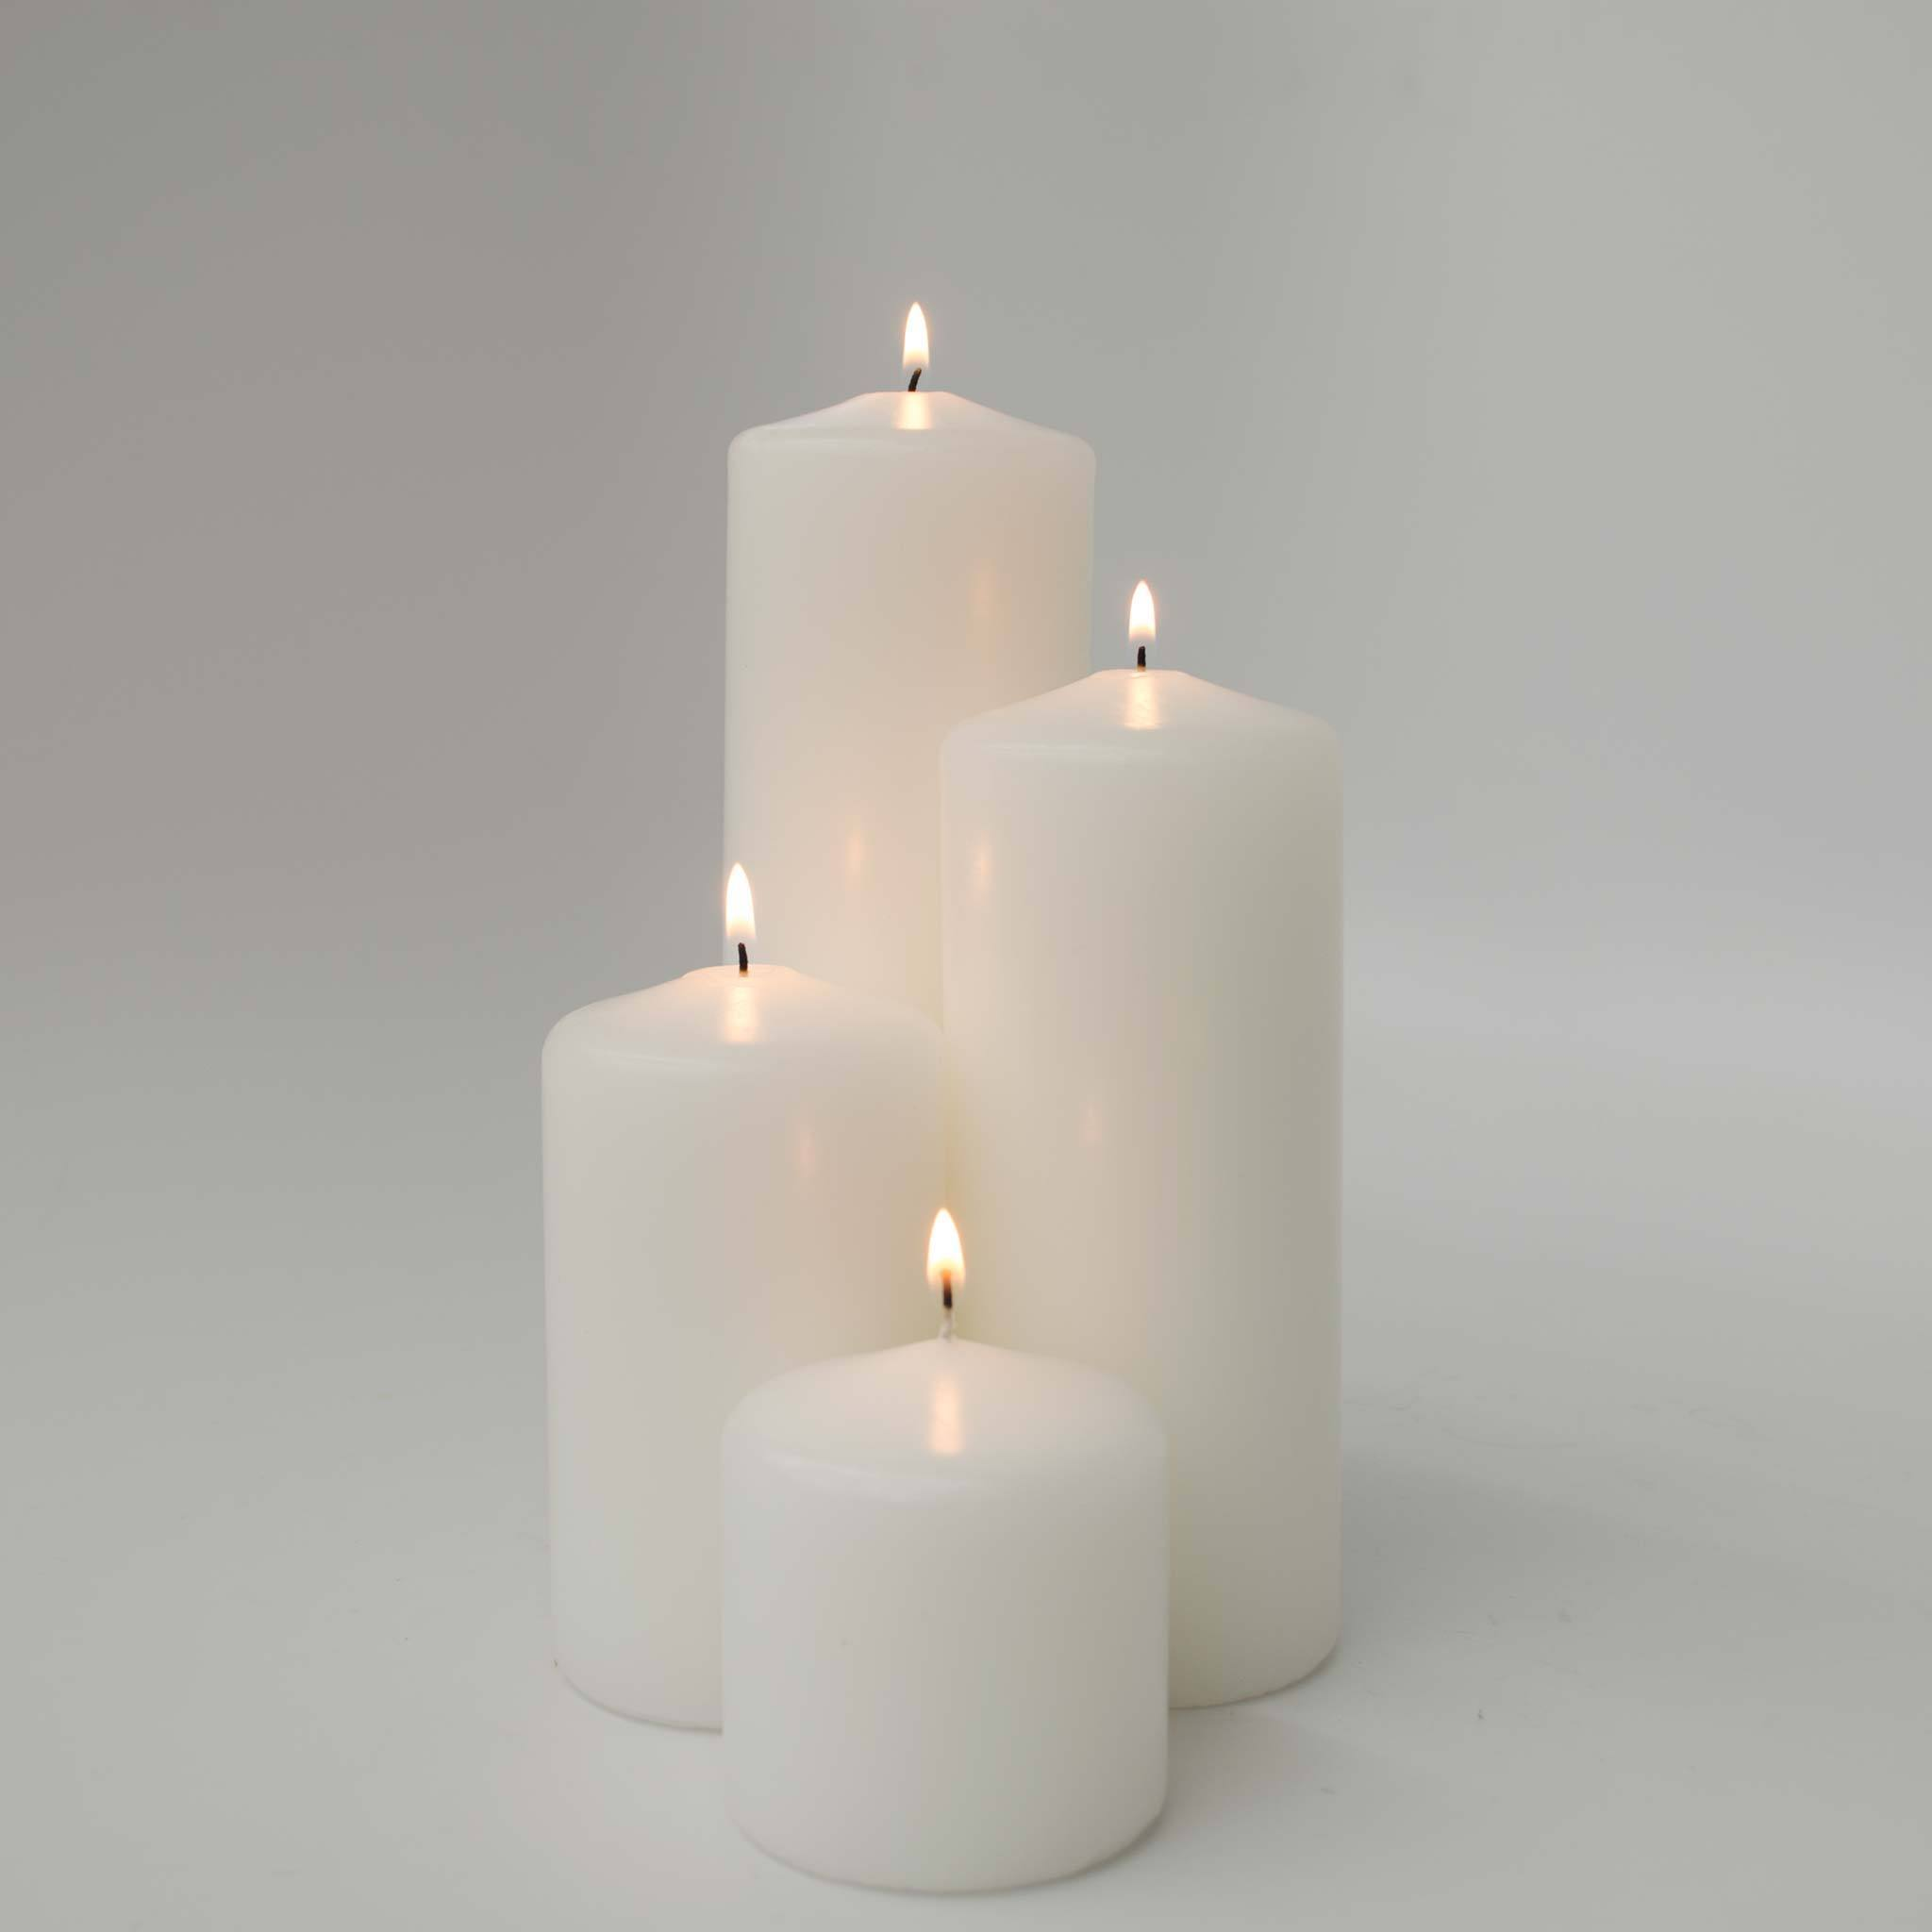 3x4 Unscented Pearl Pillar Candle Candles Candlemart.com $ 2.99